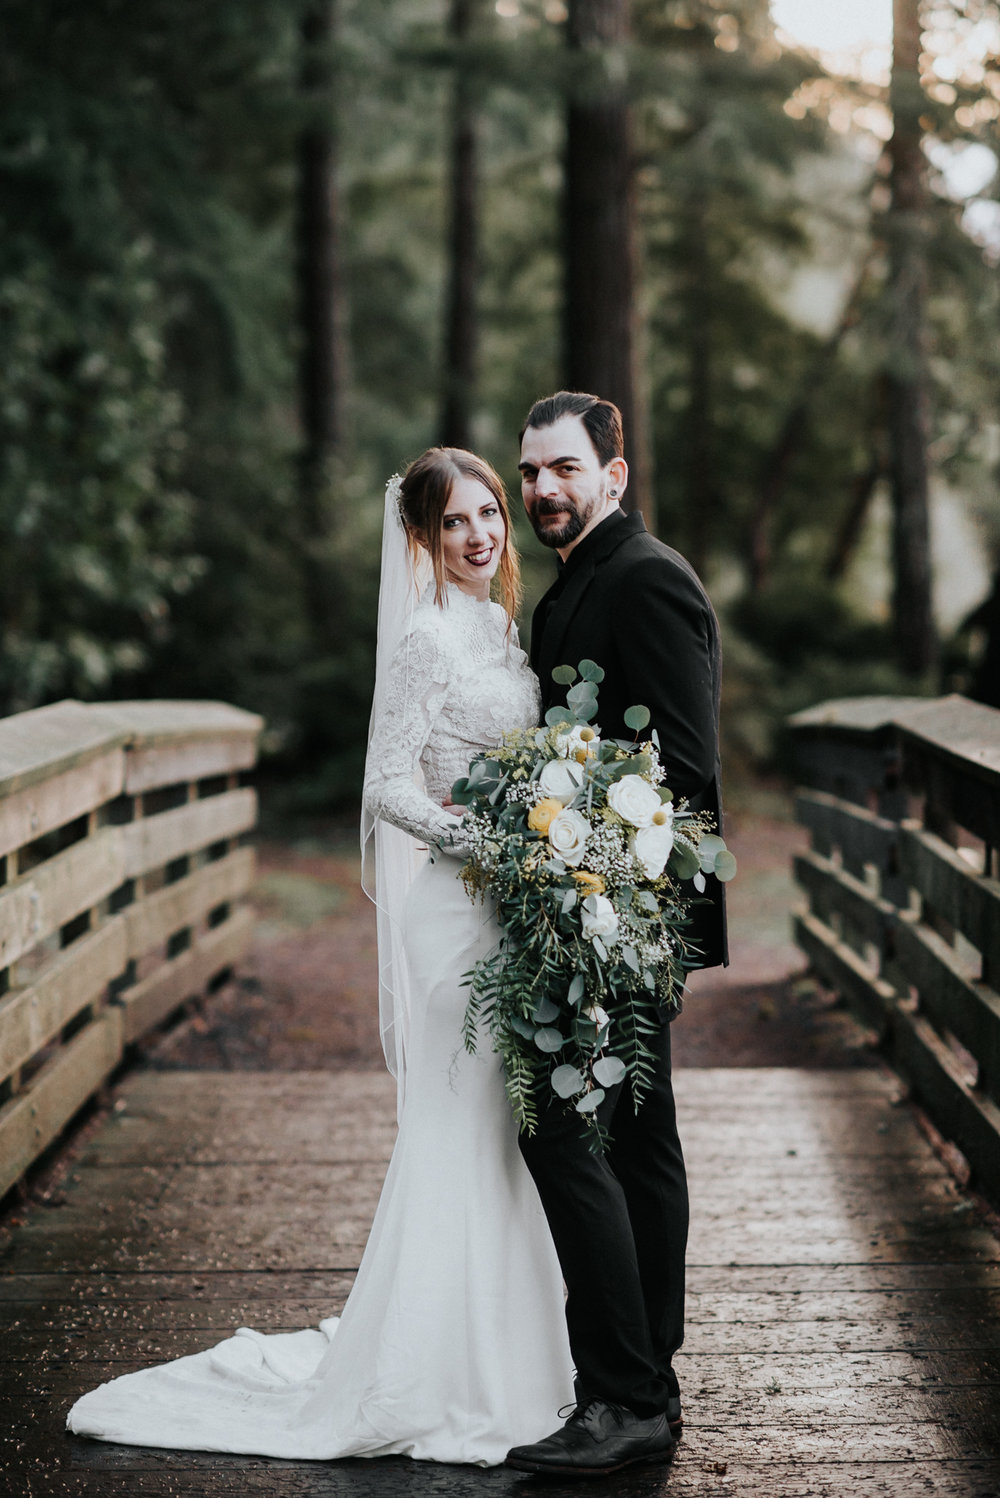 Wedding at Alderbrook Resort & Spa in Union WA | Katherine & Matthew